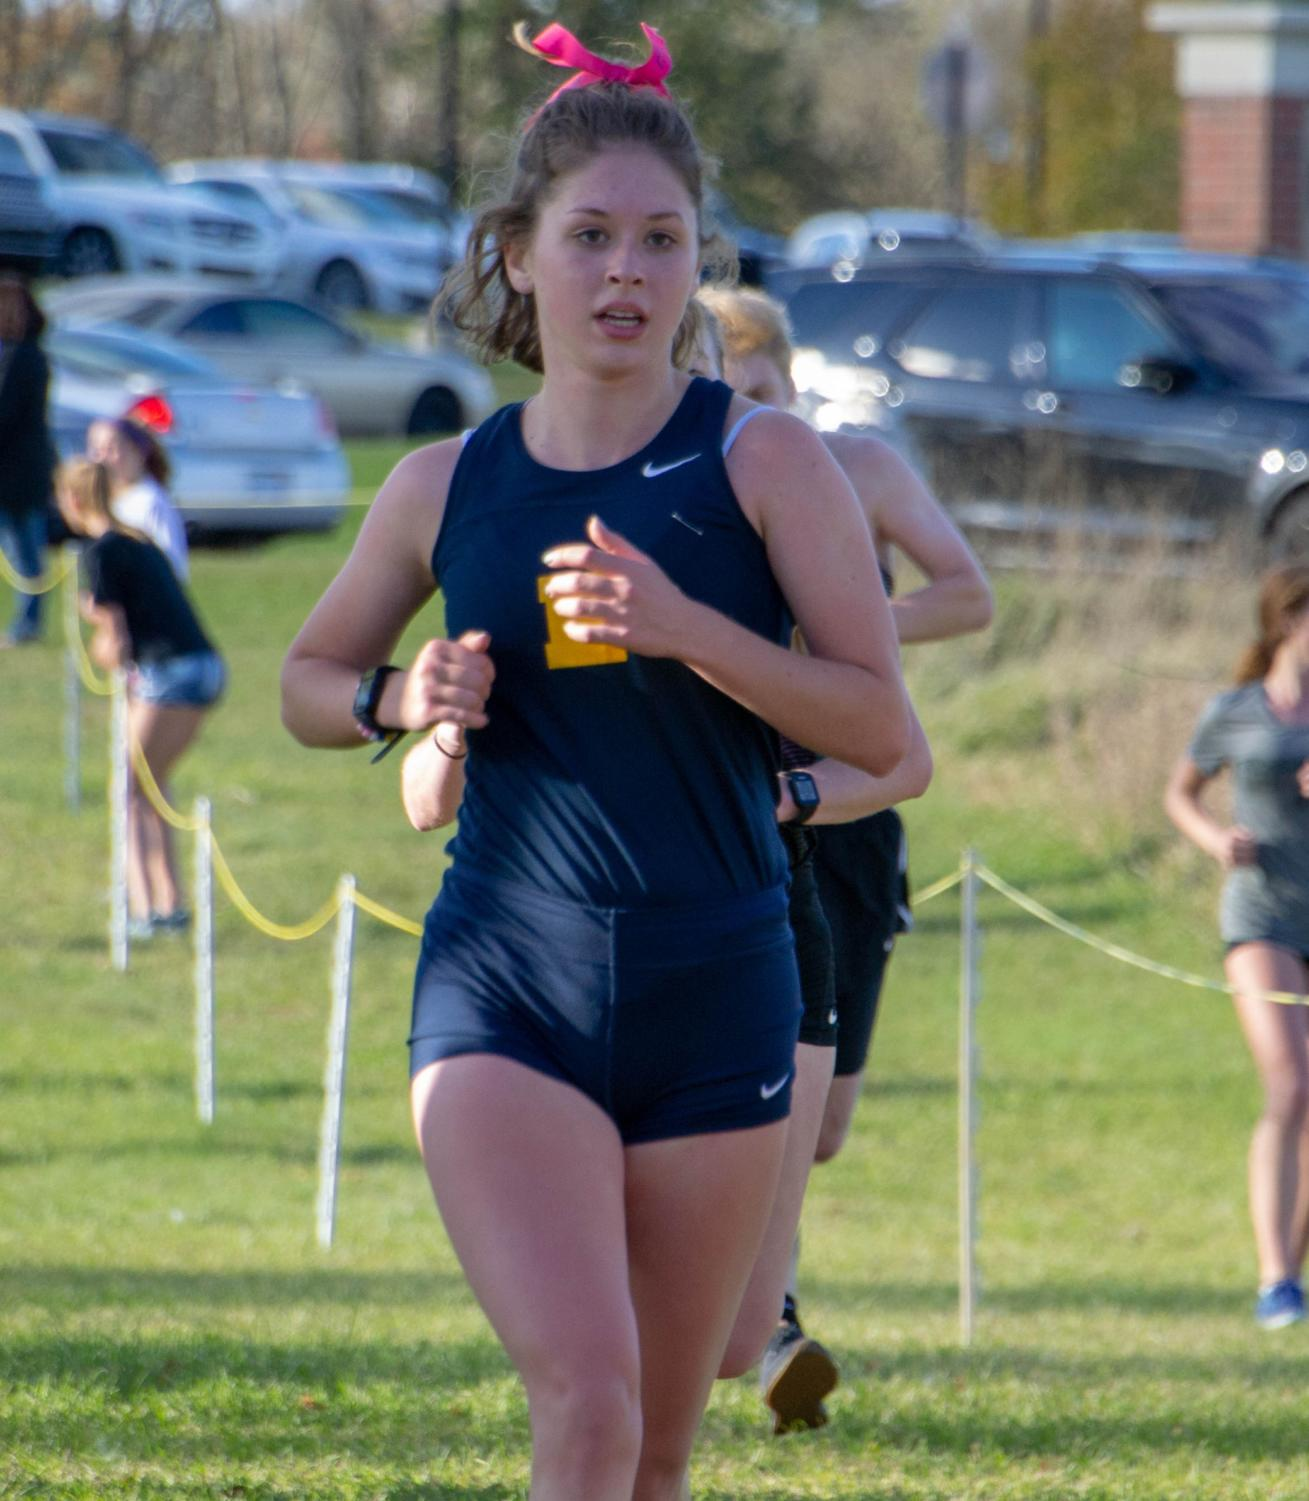 Maddy+Mayor+%2719+runs+her+final+race+as+a+senior+at+Otsego+High+School+on+October+24%2C+2018.